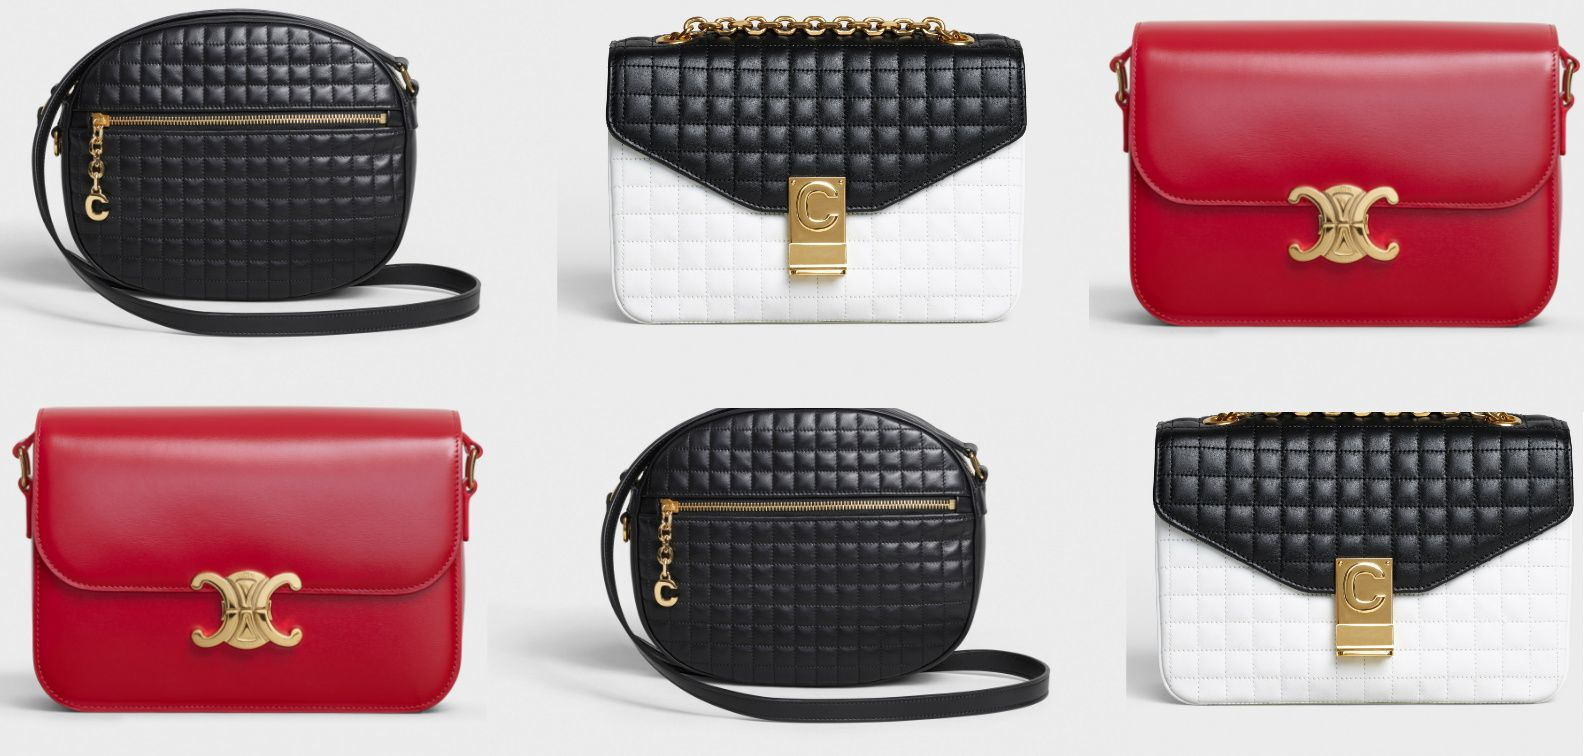 Hedi Slimane Introduces 3 New Bags At Celine  537237e76a983